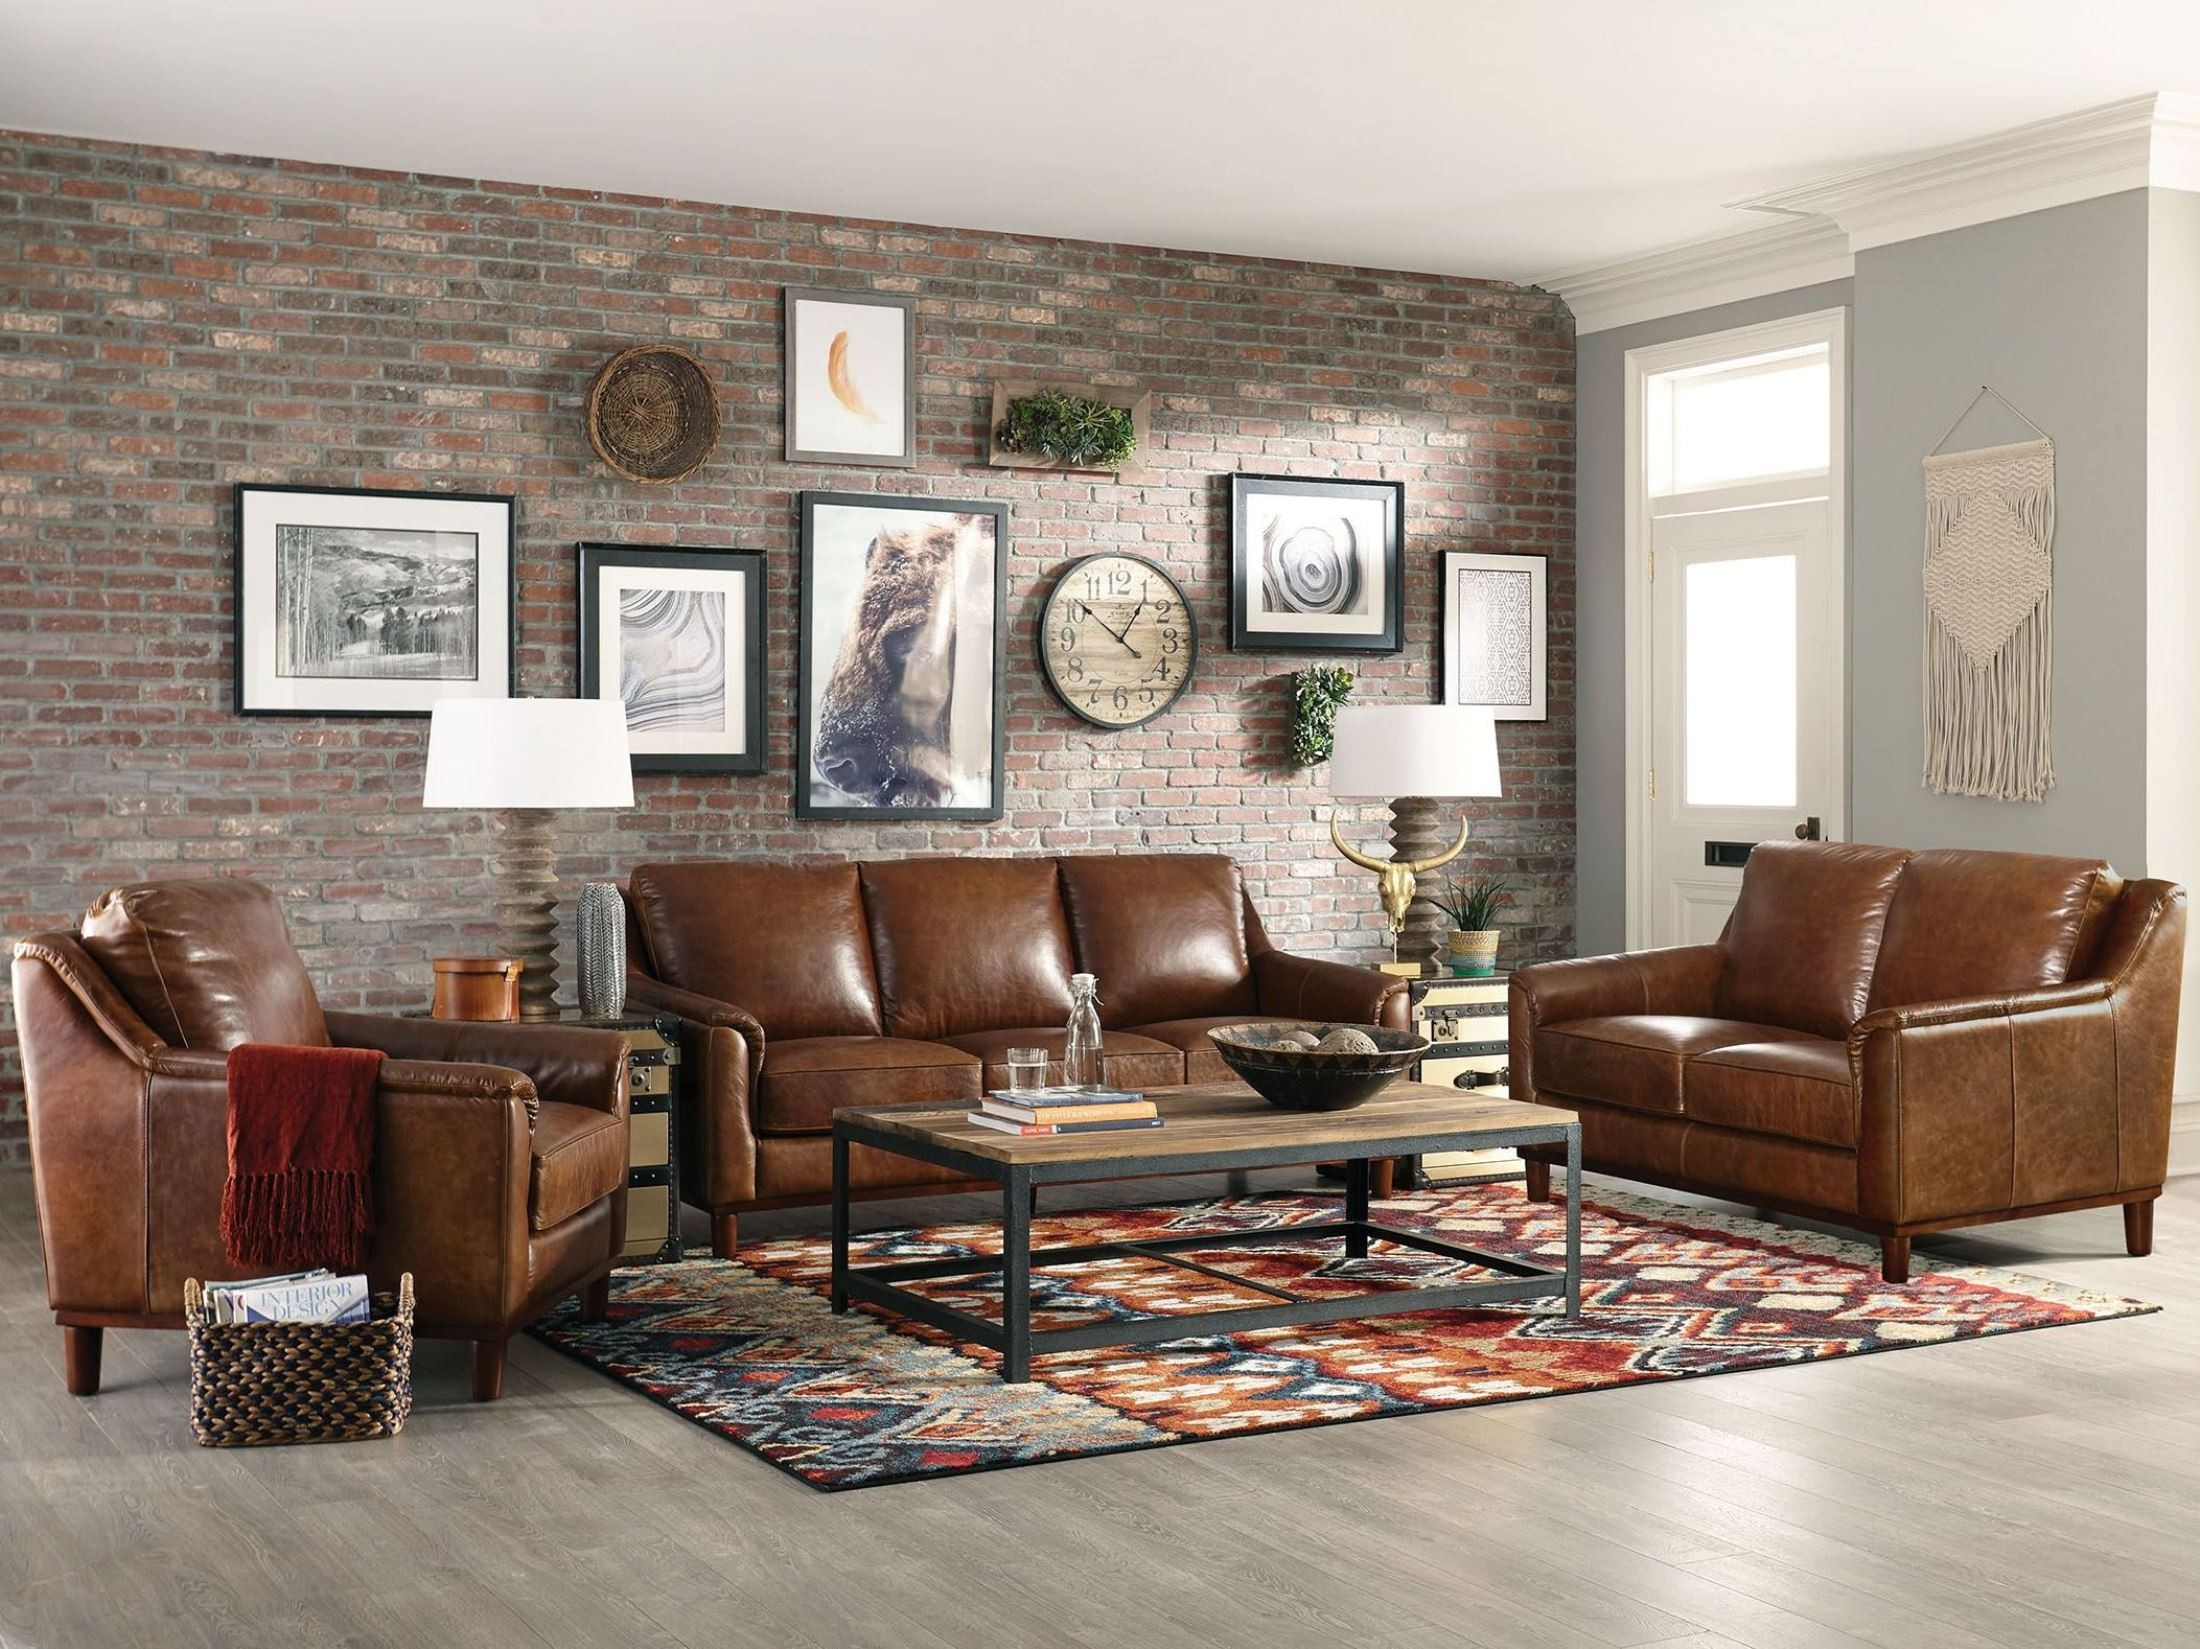 Maddox Coco Brompton Living Room Set from Lazzaro